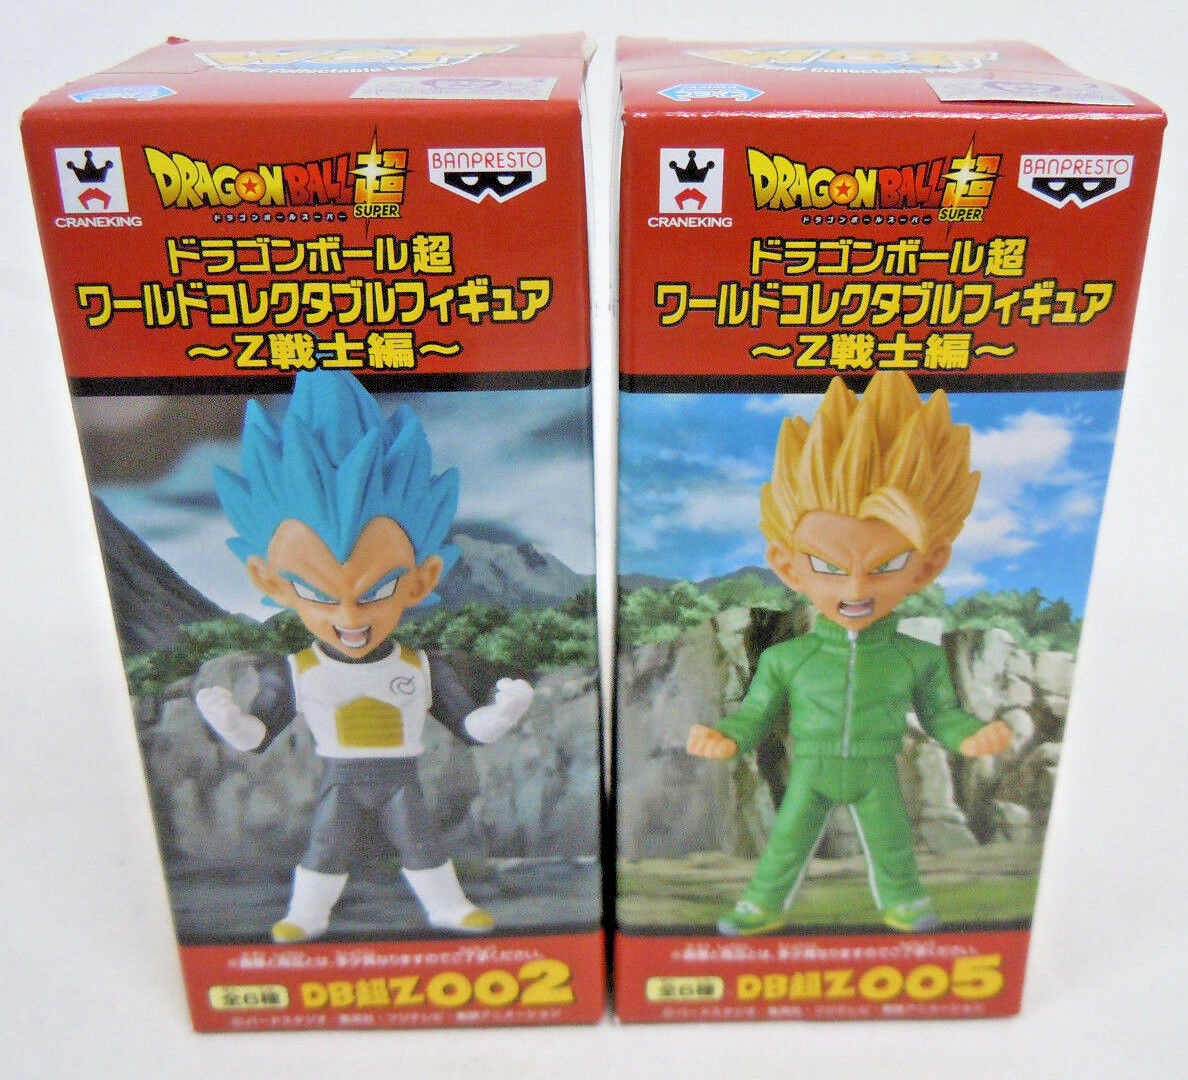 Banpresto Dragon Ball Z 2.8-Inch Super Saiyan God Super Saiy